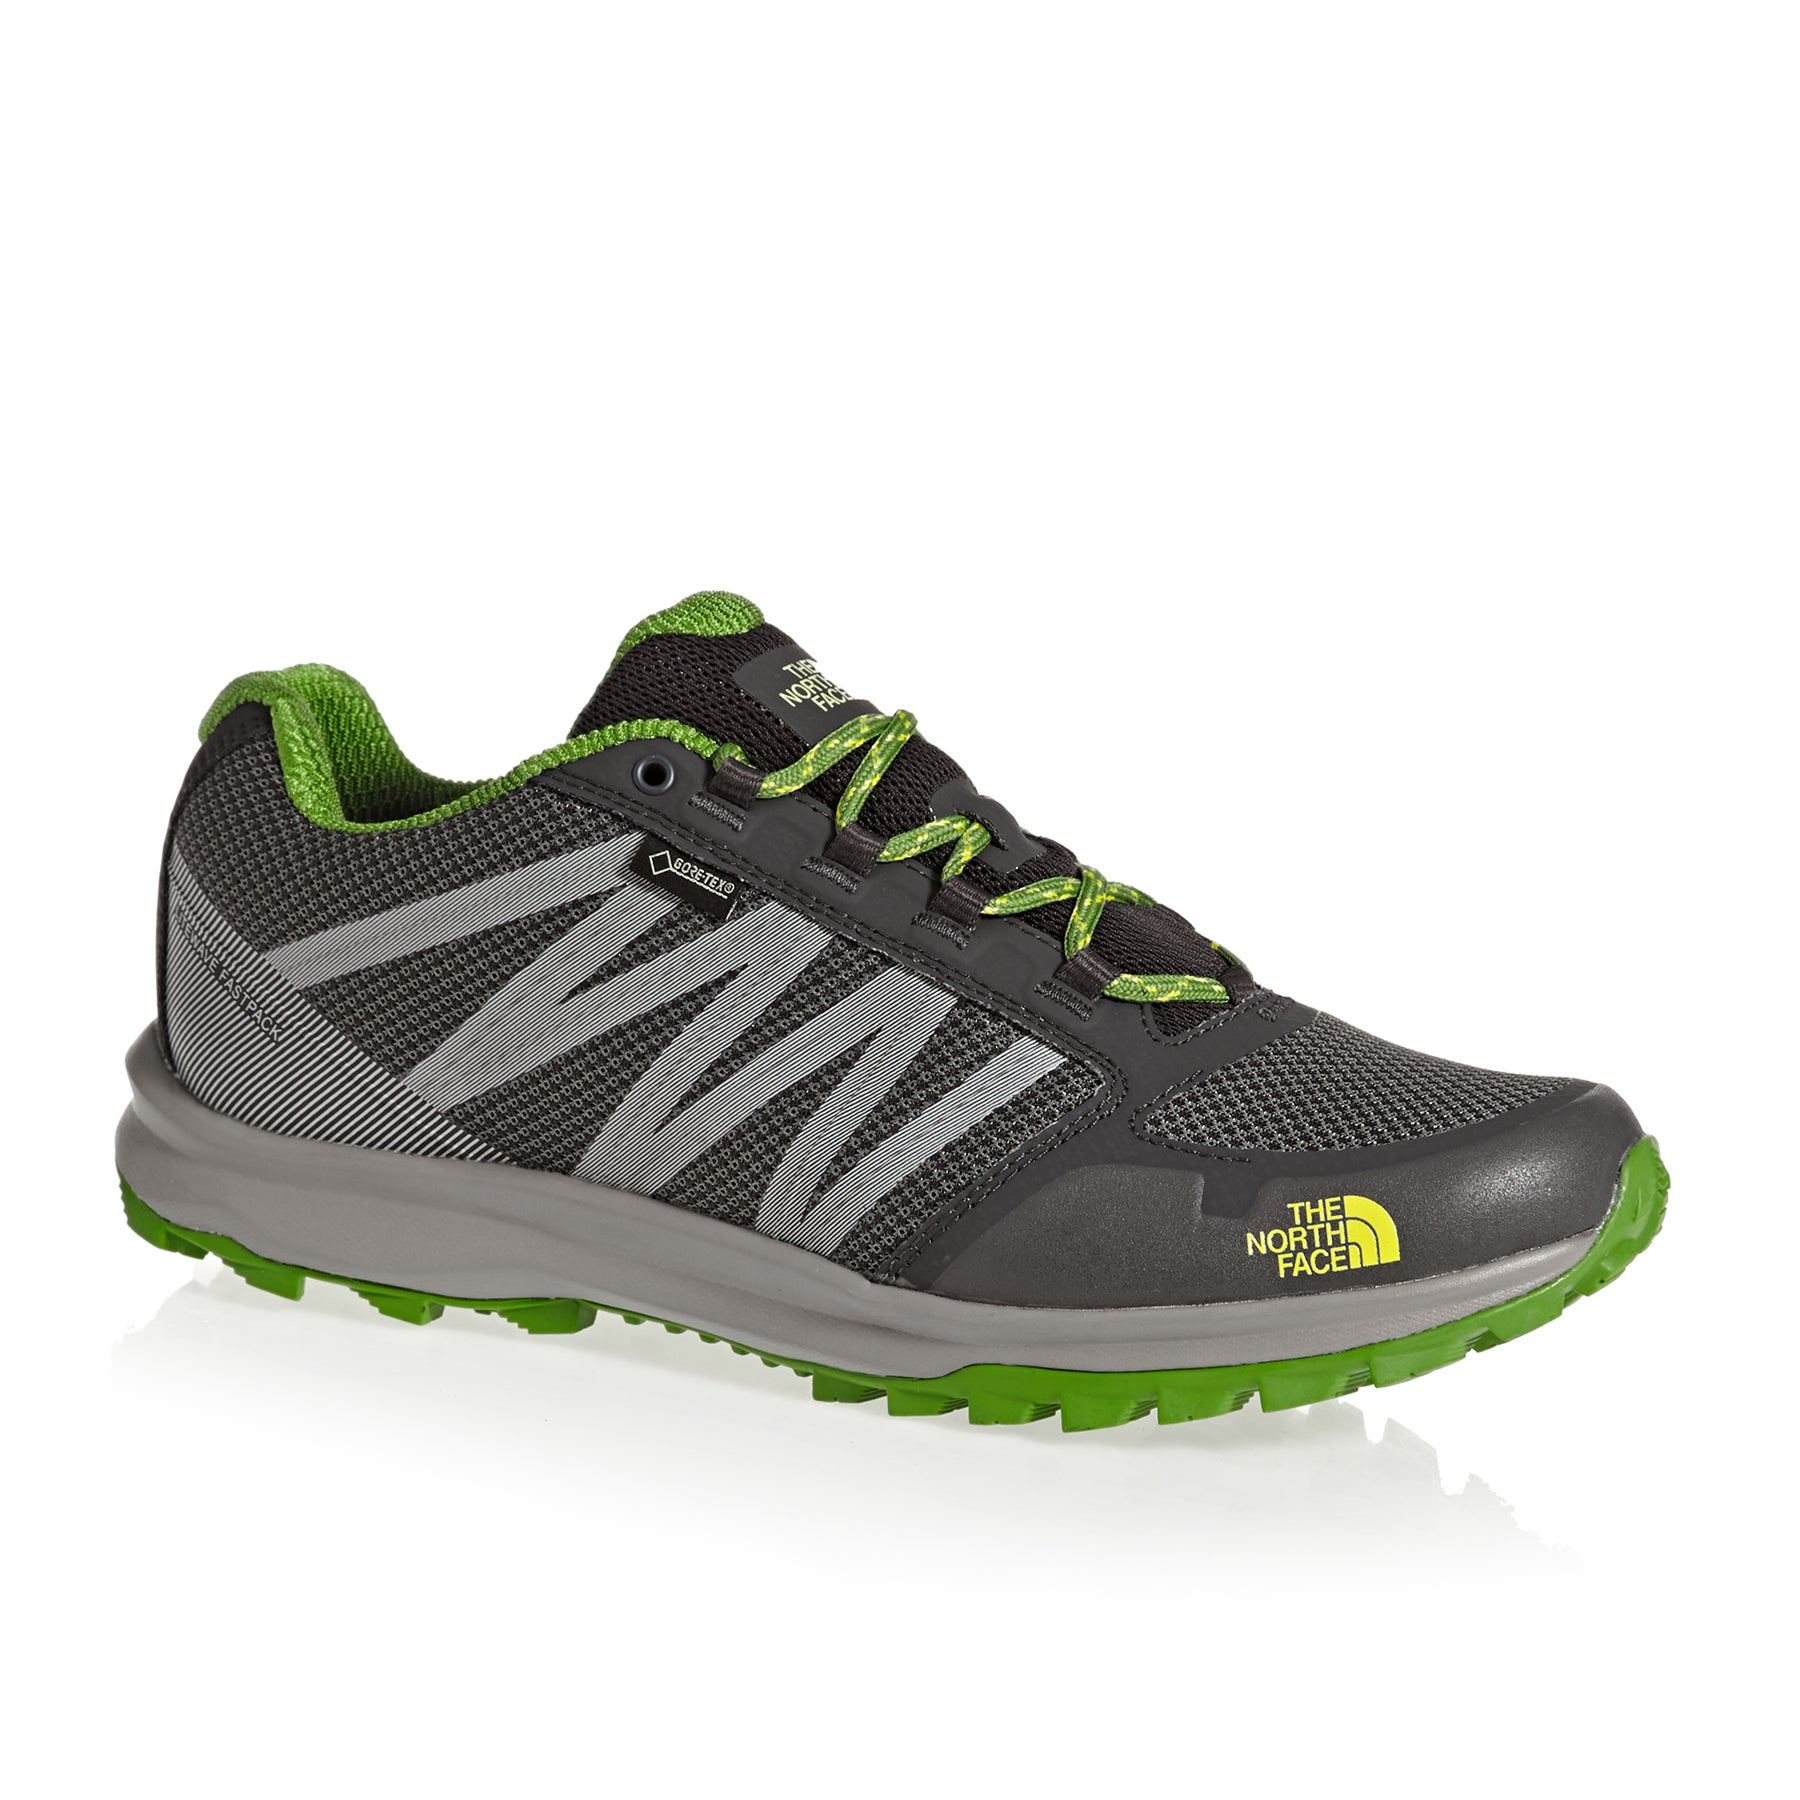 North Face Litewave FP GTX Shoes - Dark Shadow Grey Flashlight Green